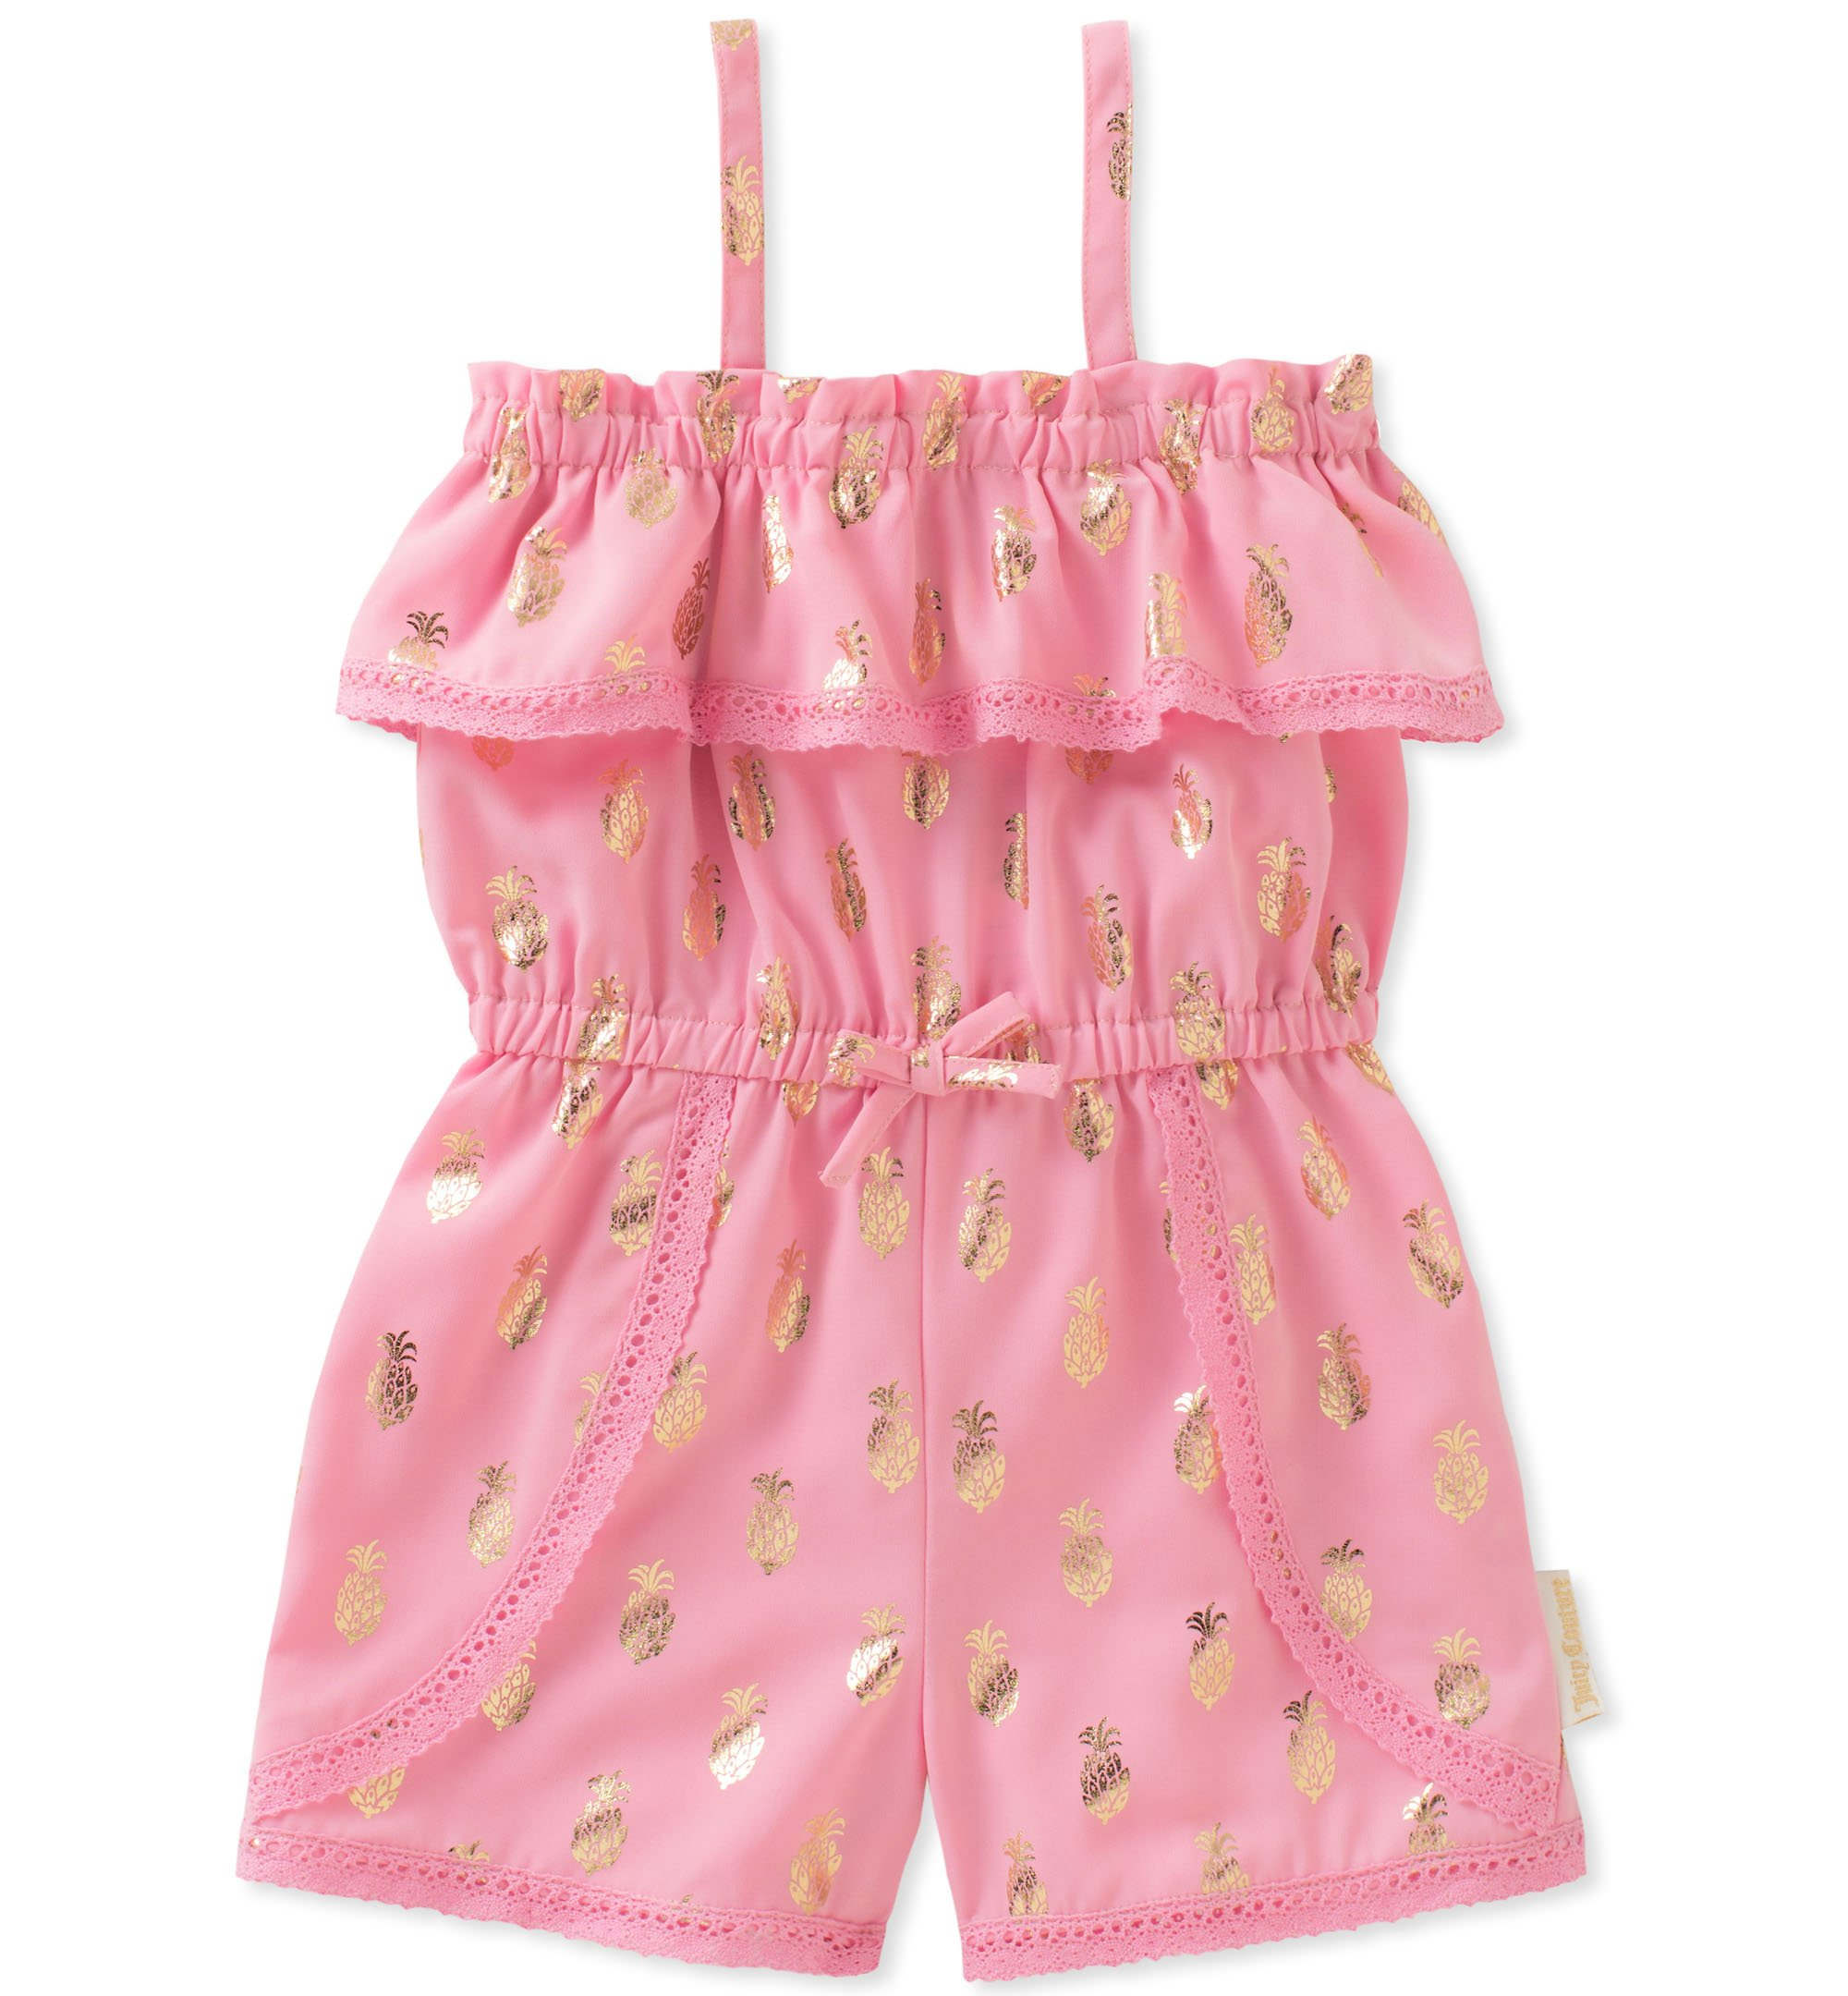 Juicy Couture Toddler Girls' Romper, Pink/Gold, 2T